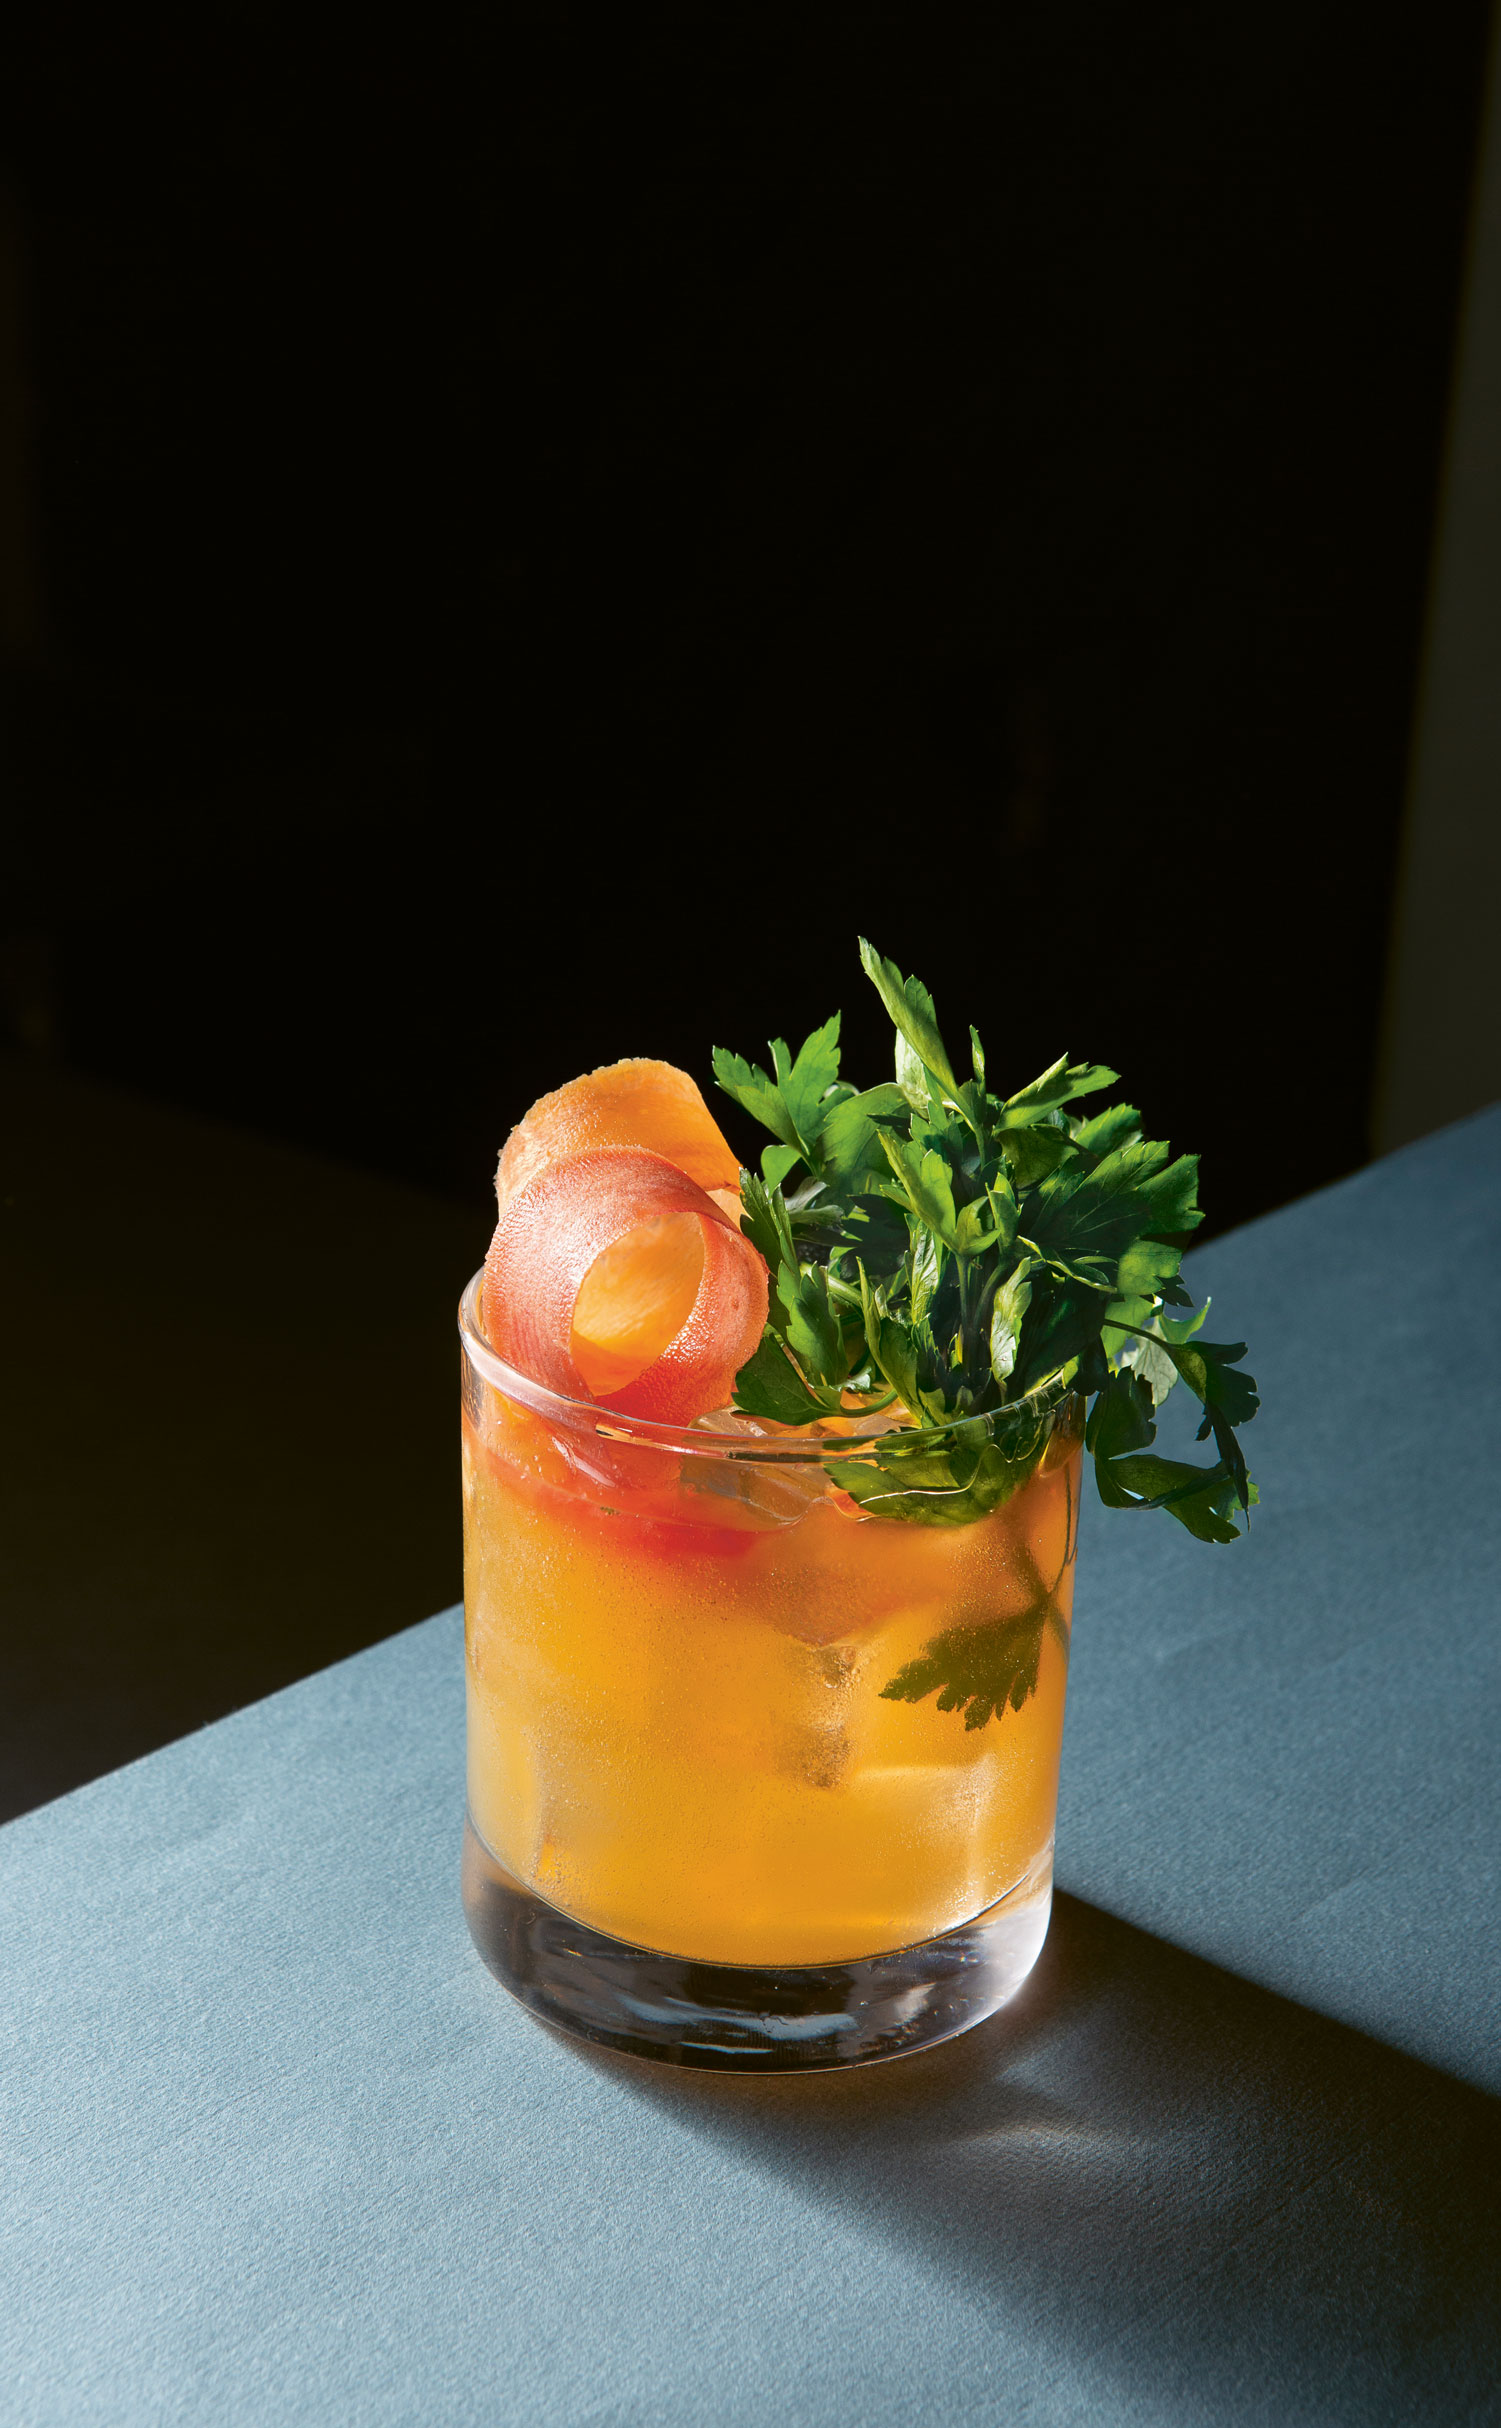 Carrot spritz. A non-alcoholic spritz from the Savannah outpost of The Fat Radish restaurant, which combines the sweet earthiness of fresh-from-the-ground carrots with spicy ginger. All photographs by Andy Sewell